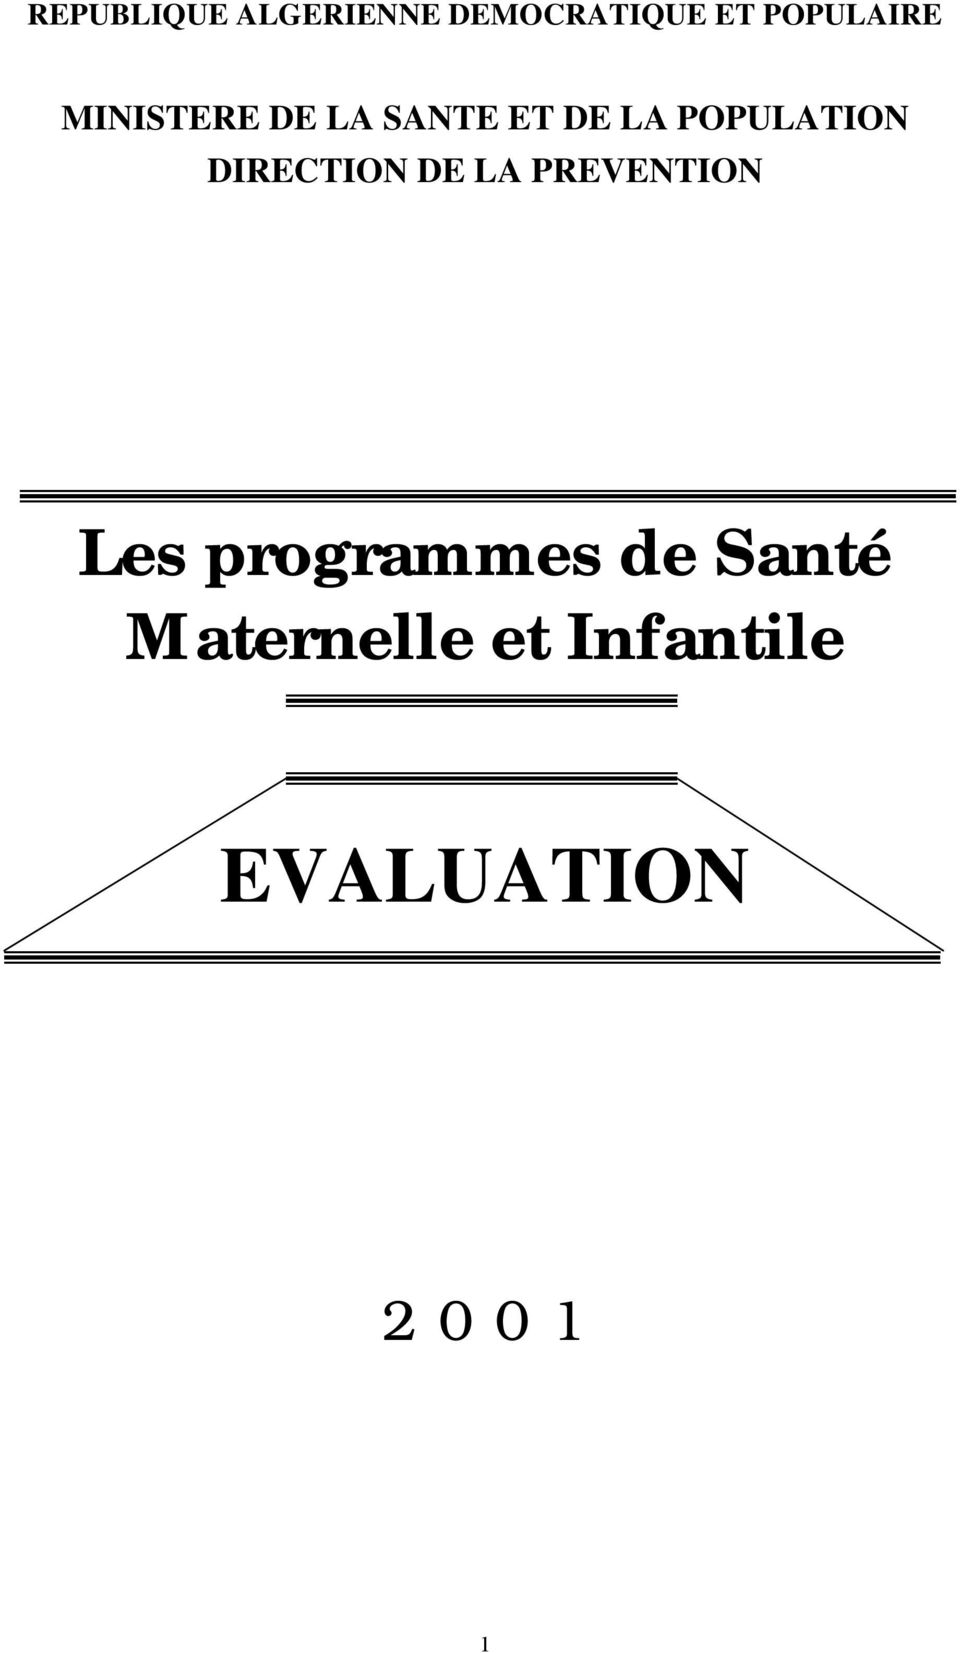 POPULATION DIRECTION DE LA PREVENTION Les